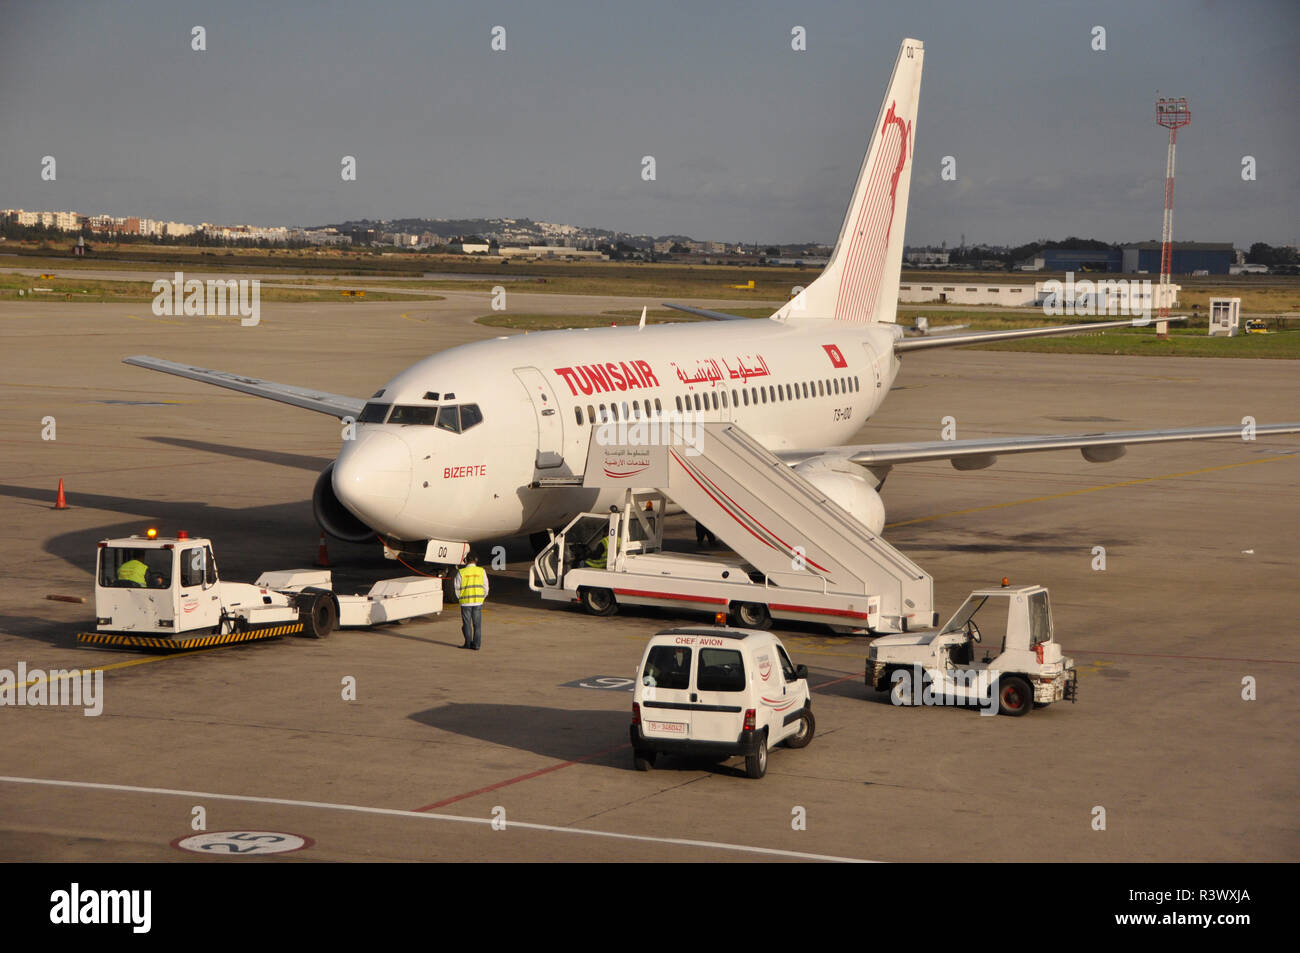 Tunesia: Tunis Air aircraft at Tunis airport - Stock Image